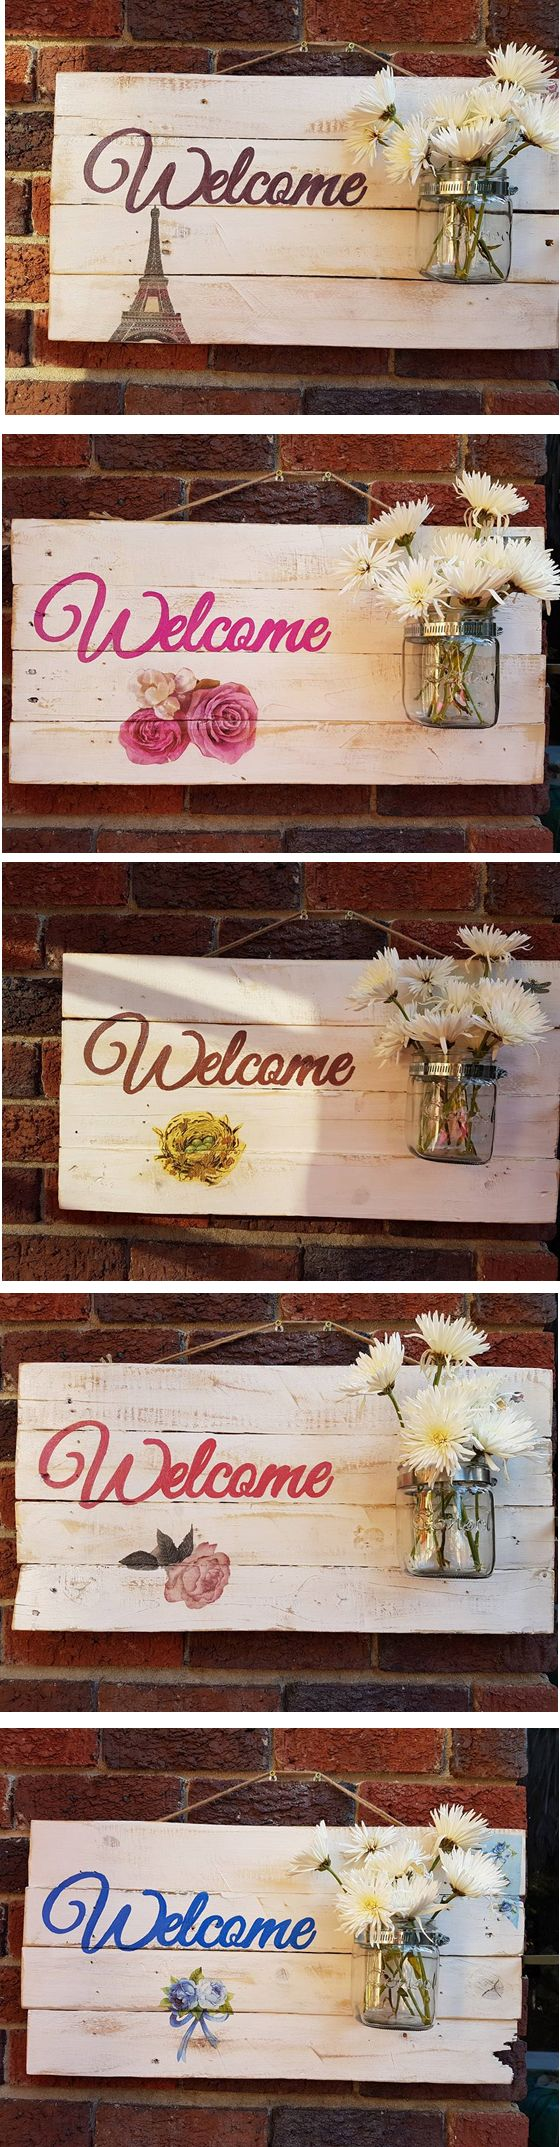 Various Welcome Boards for your entrance to your home